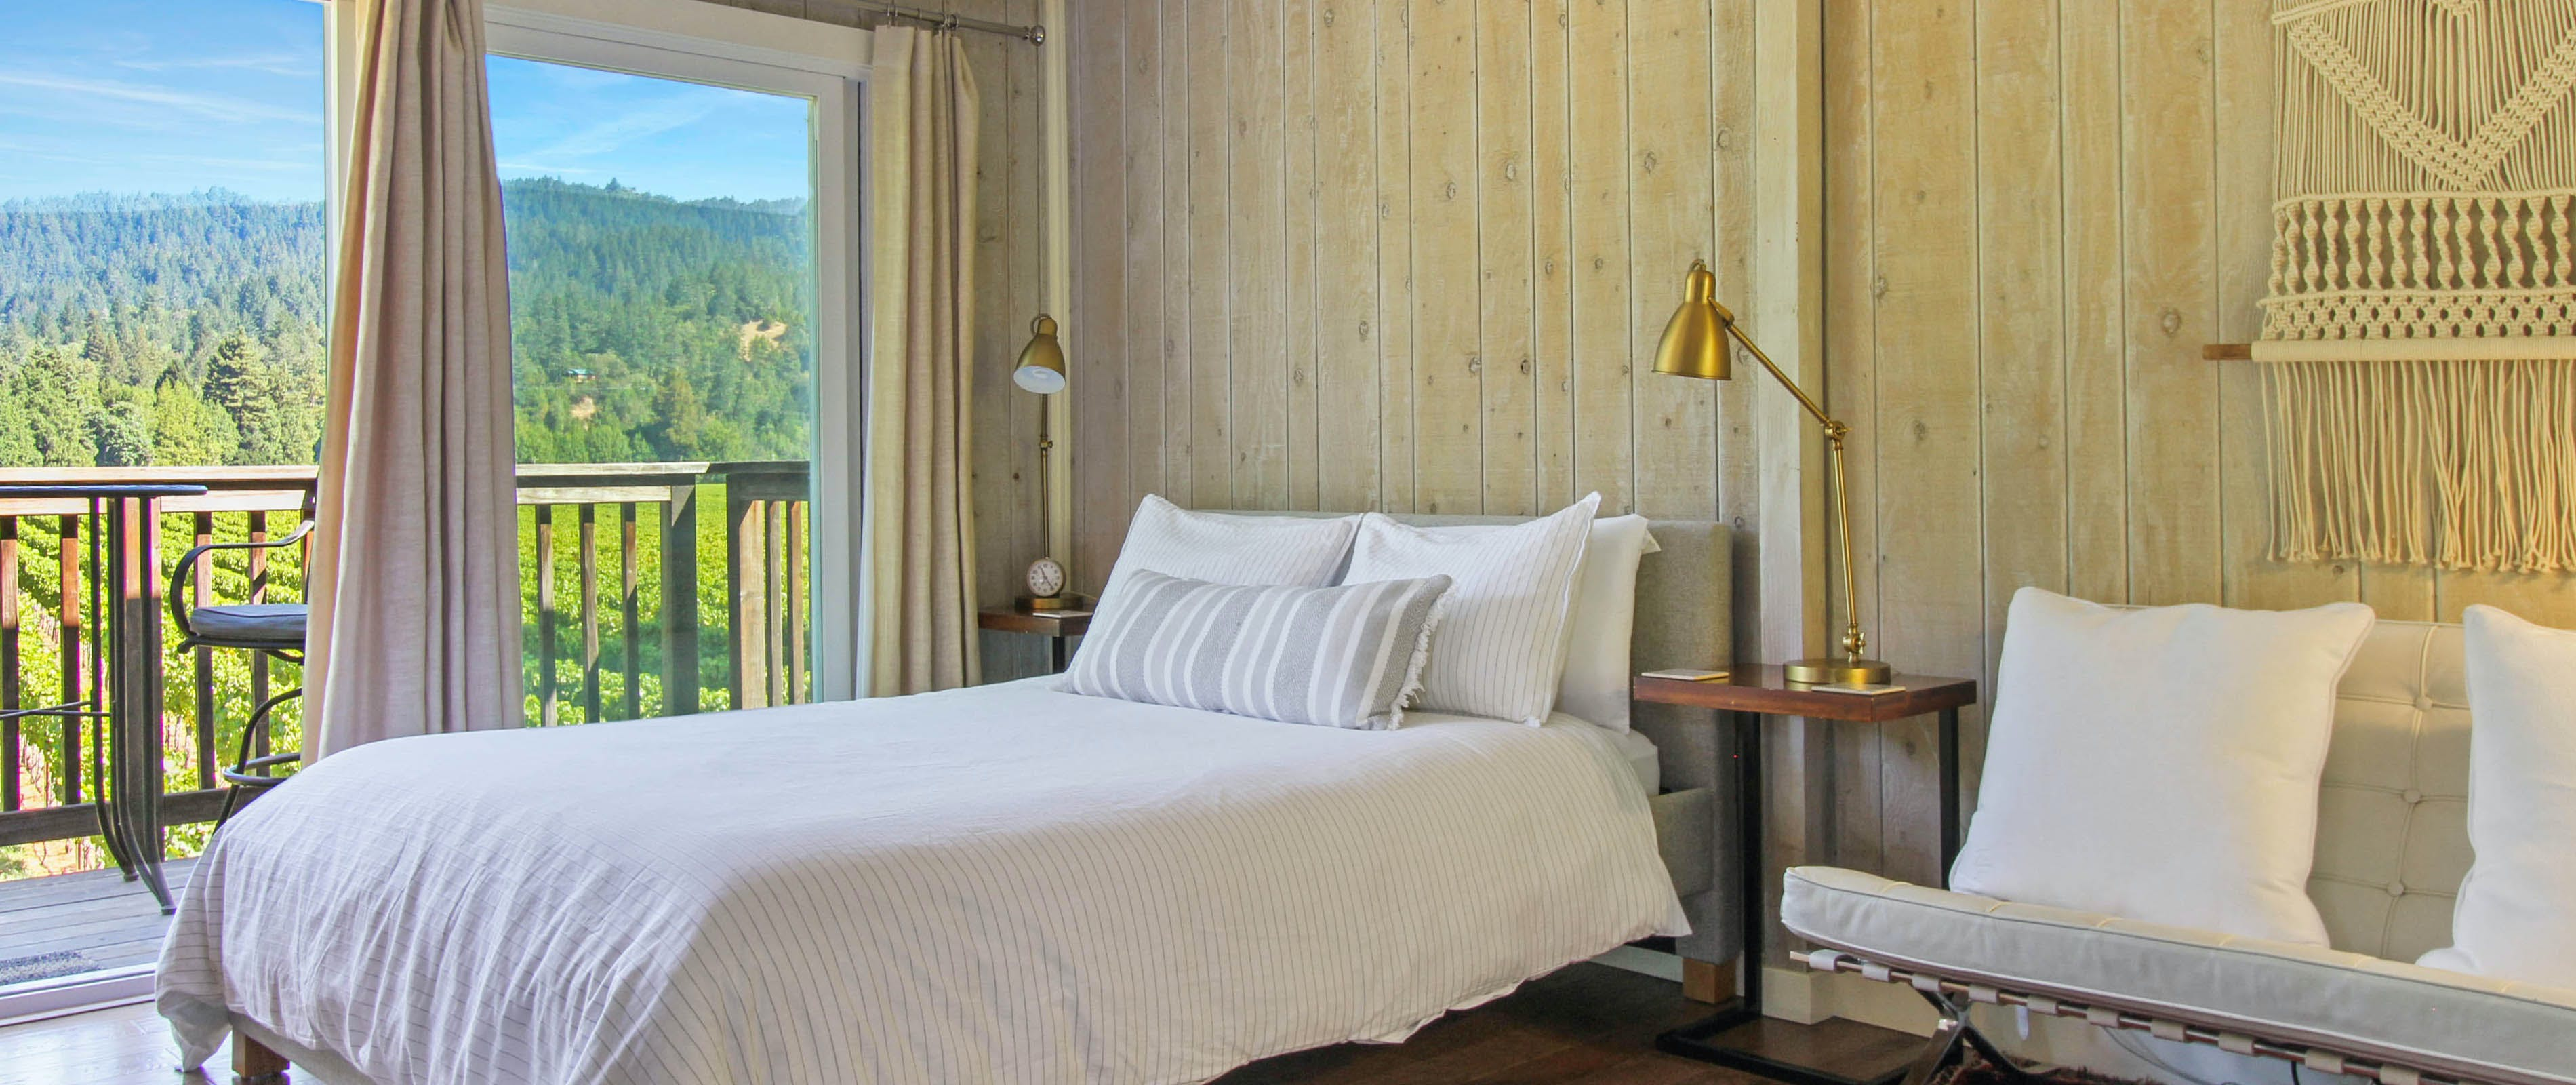 Inside a Guerneville, CA vacation rental bedroom with wooden wall panels and balcony overlooking a forest.